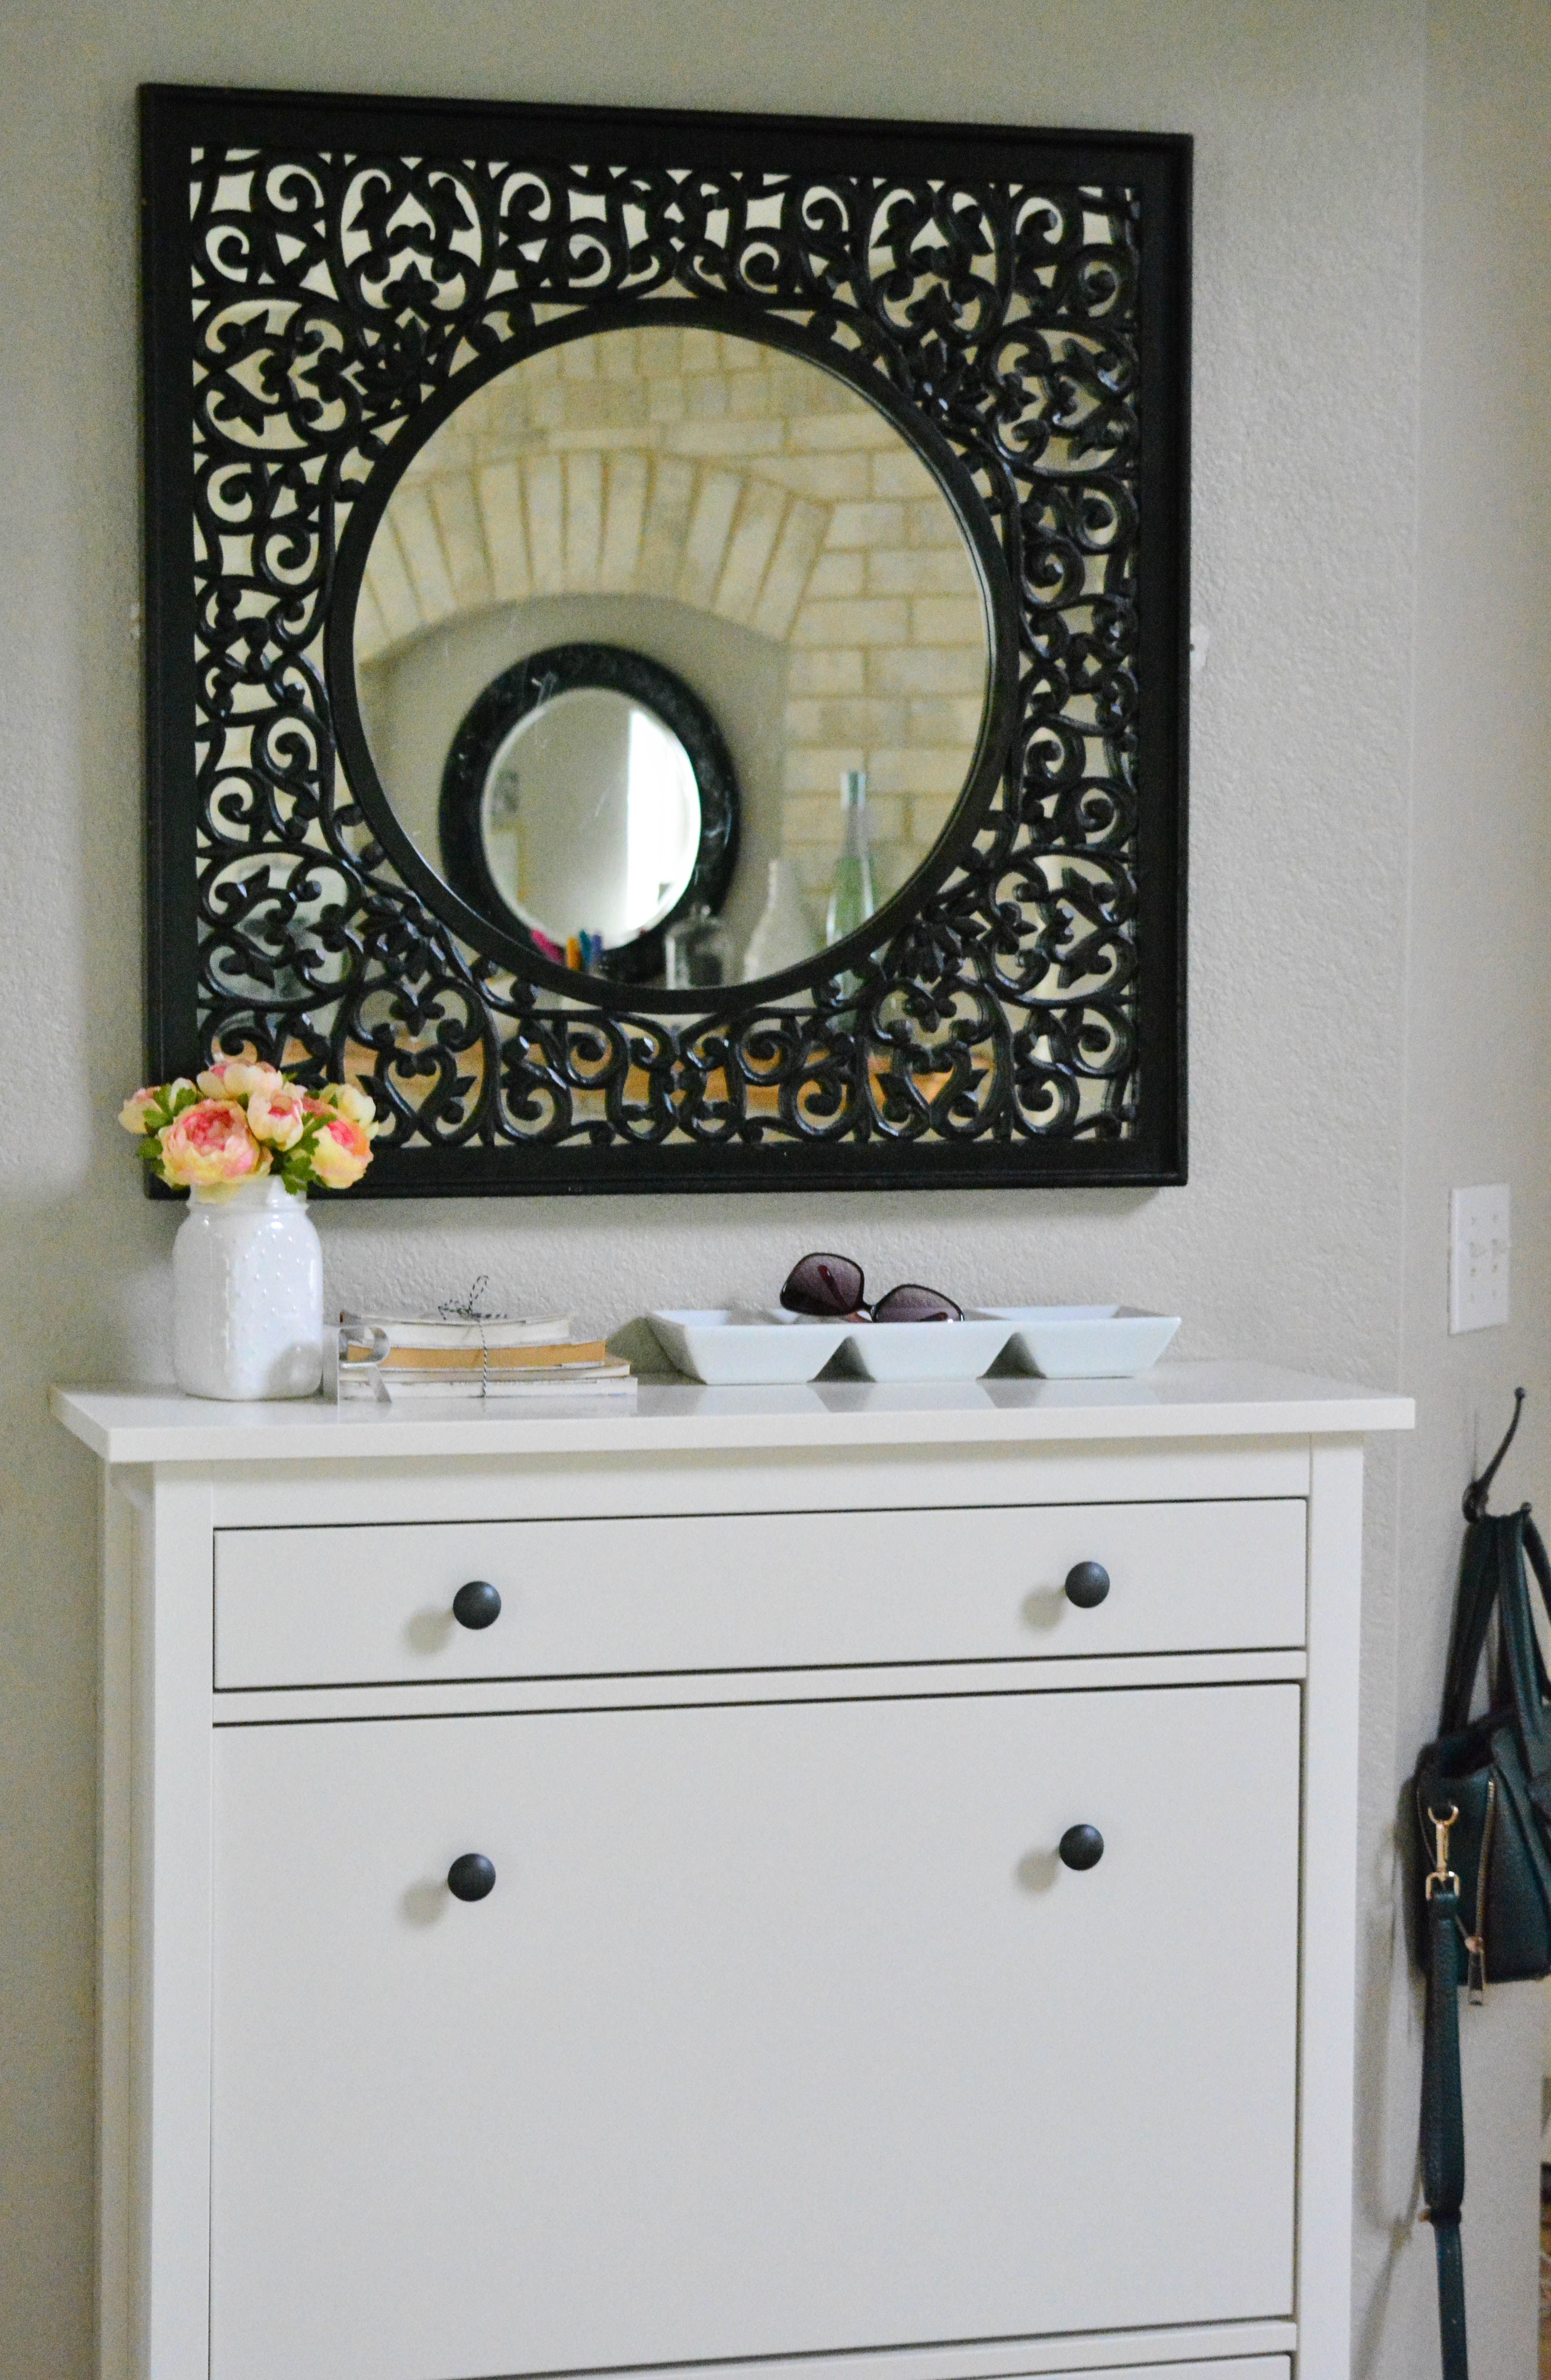 Perfect Review On Using The Ikea Hemnes Shoe Cabinet To Organize Your Familyu0027s Shoes.  Plus, Ideas On Refinishing It To Make It Look Awesome In ...